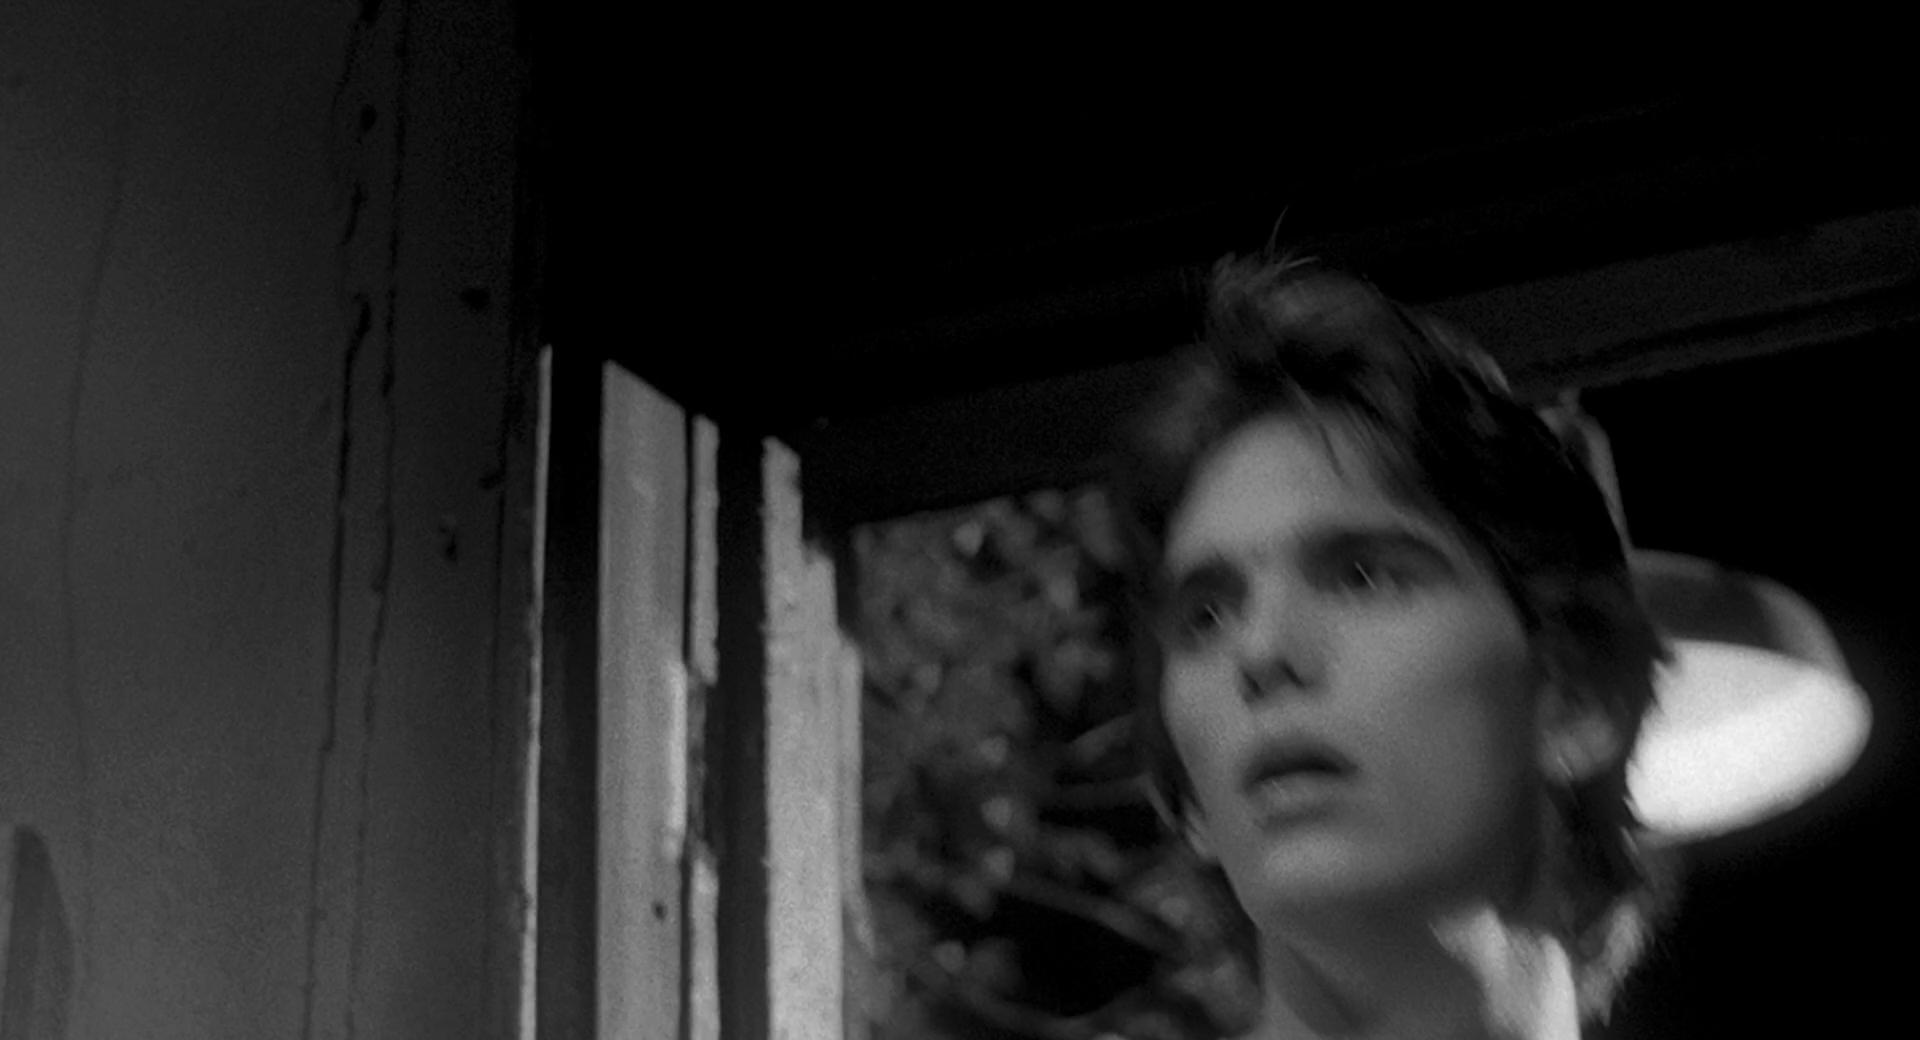 Rumble fish movie download in hd dvd divx ipad iphone for Rumble fish movie